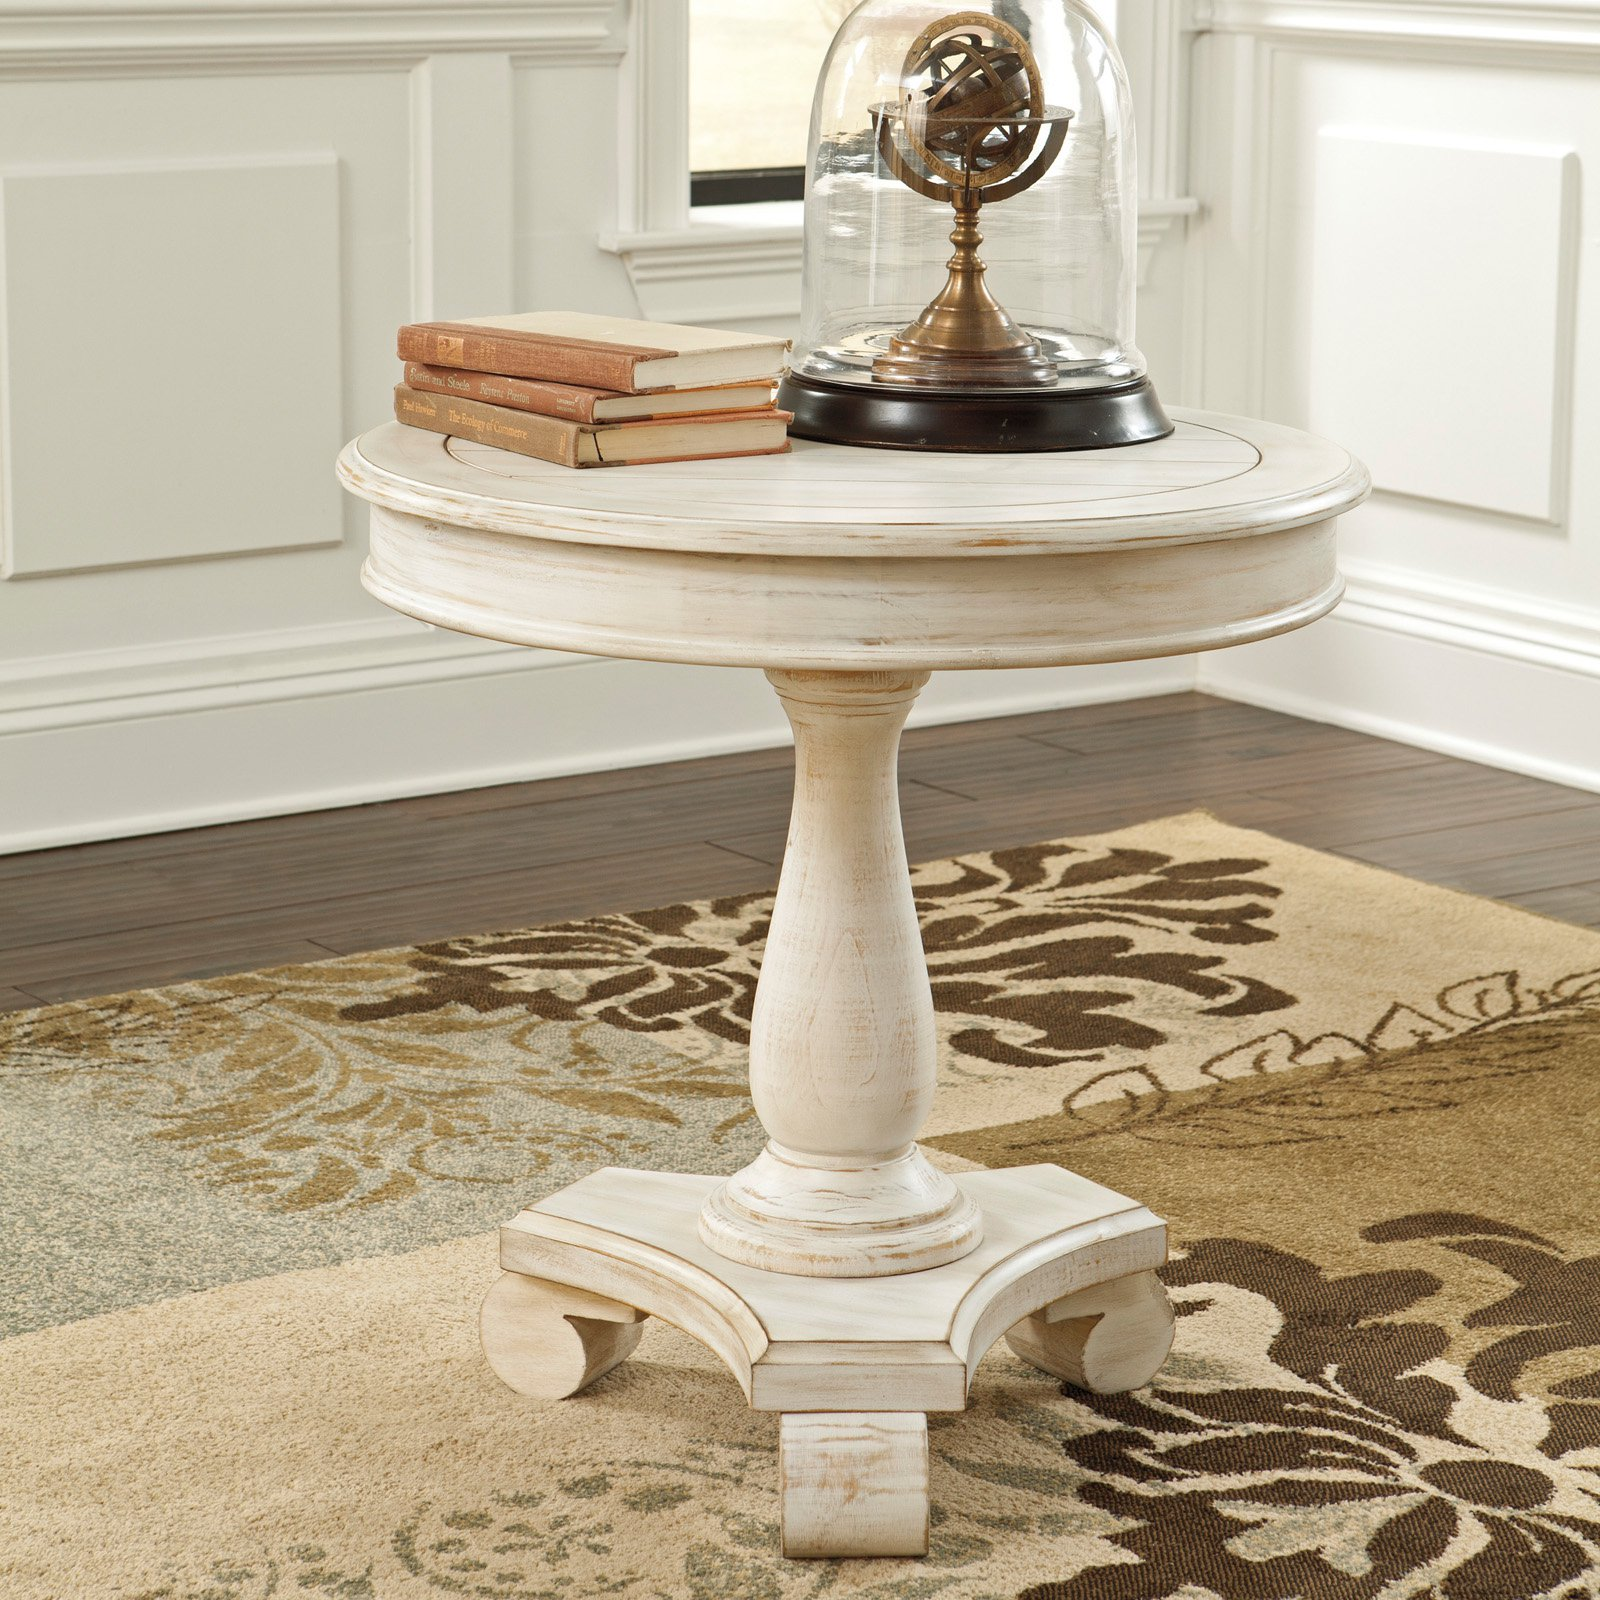 Signature Design By Ashley Cottage Accents White Round Accent Table by Ashley Furniture